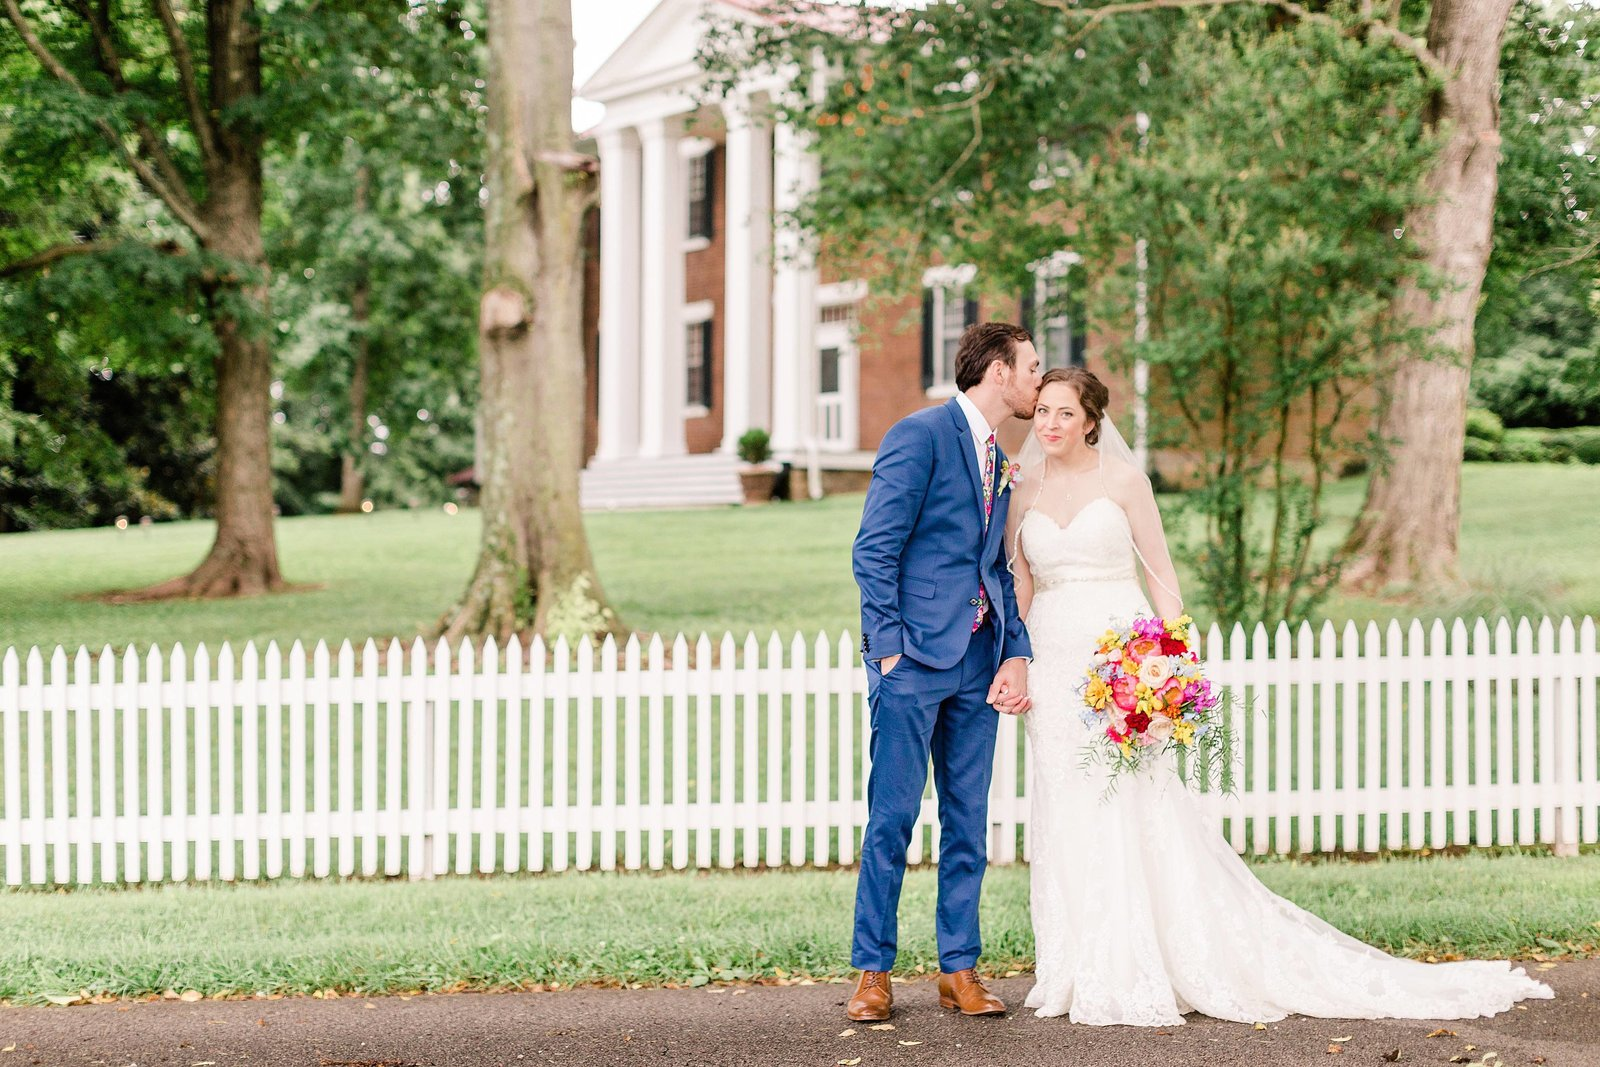 Nashville TN Wedding photographer | Amy Allmand photography_0011